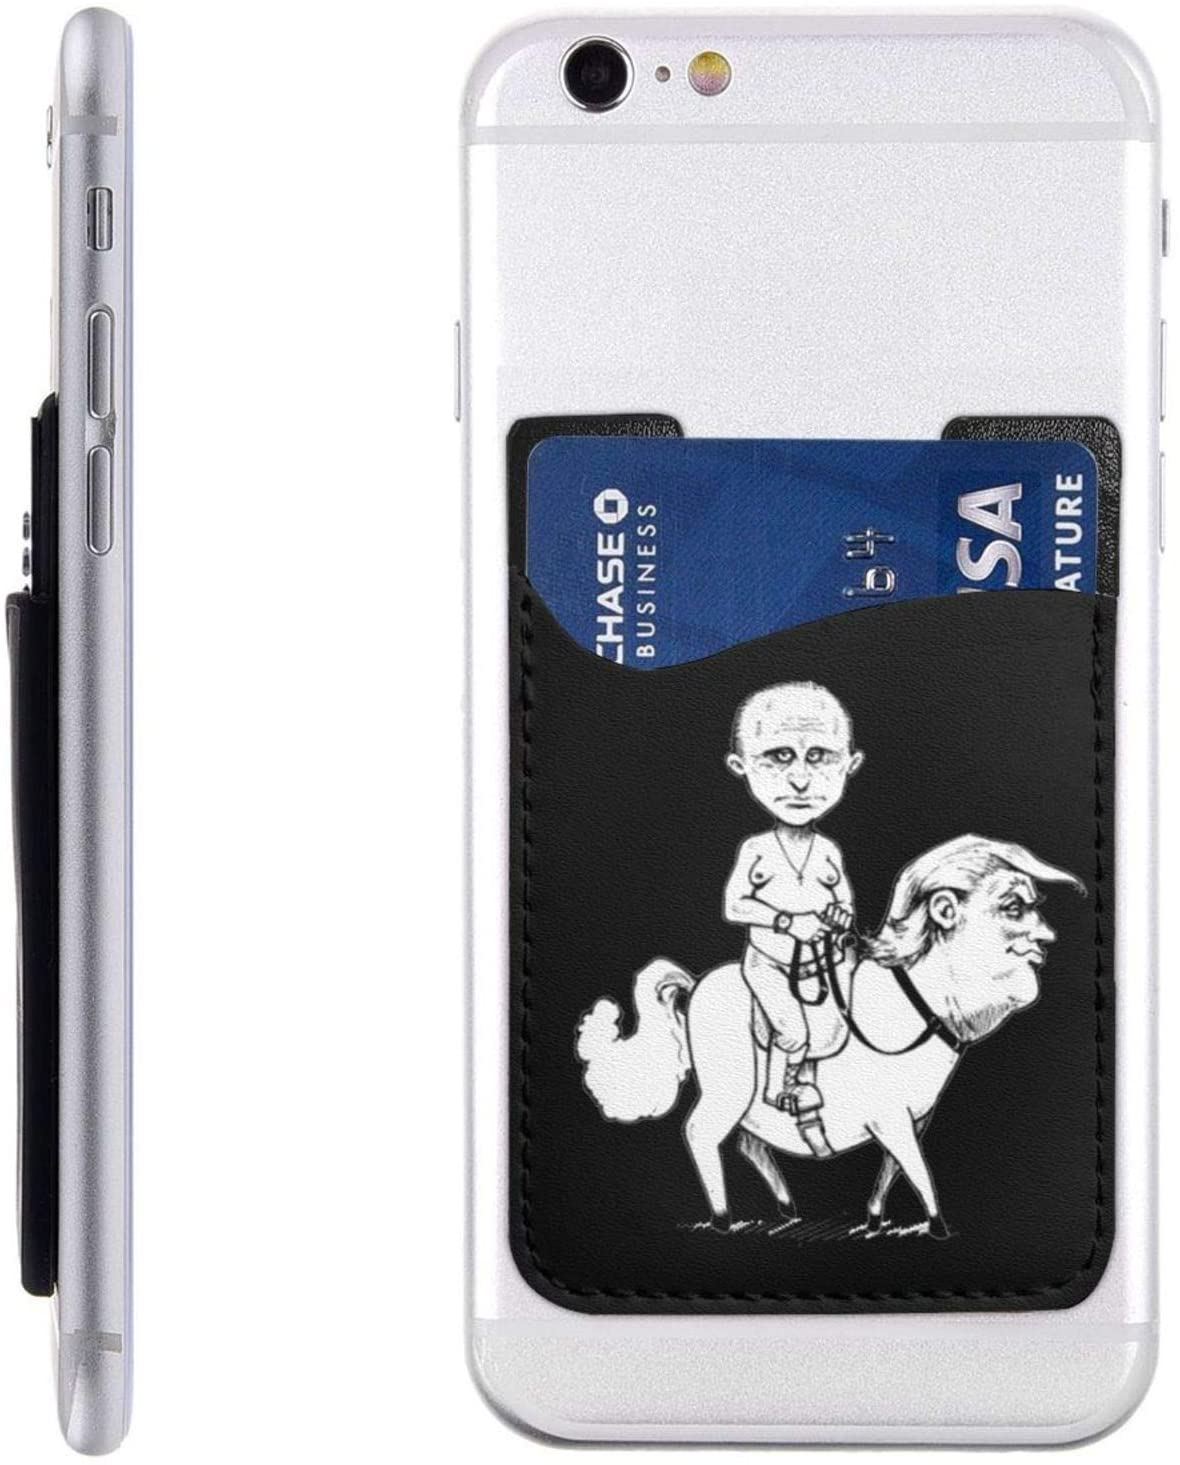 Friends Phone Card Holder, Stick-On Id Credit Card Wallet Phone Case Pouch Sleeve Pocket for iPhone, Android and All Smartphones